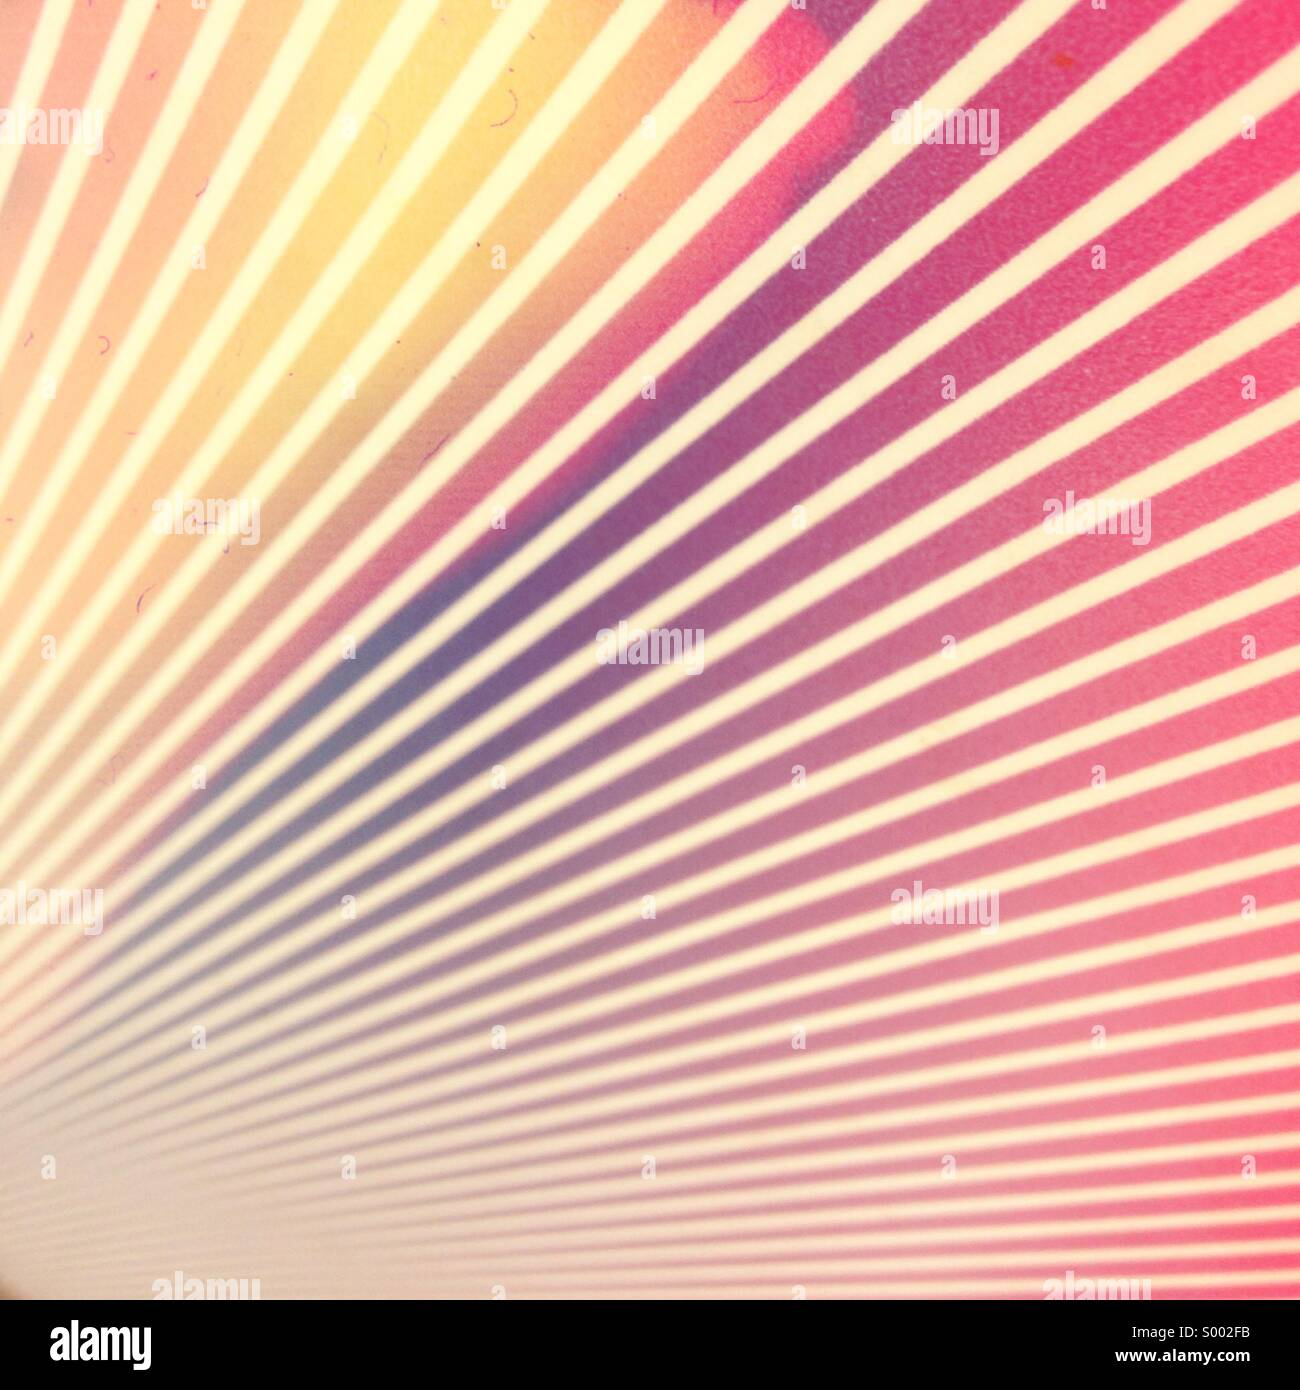 Abstract starburst stripes - Stock Image